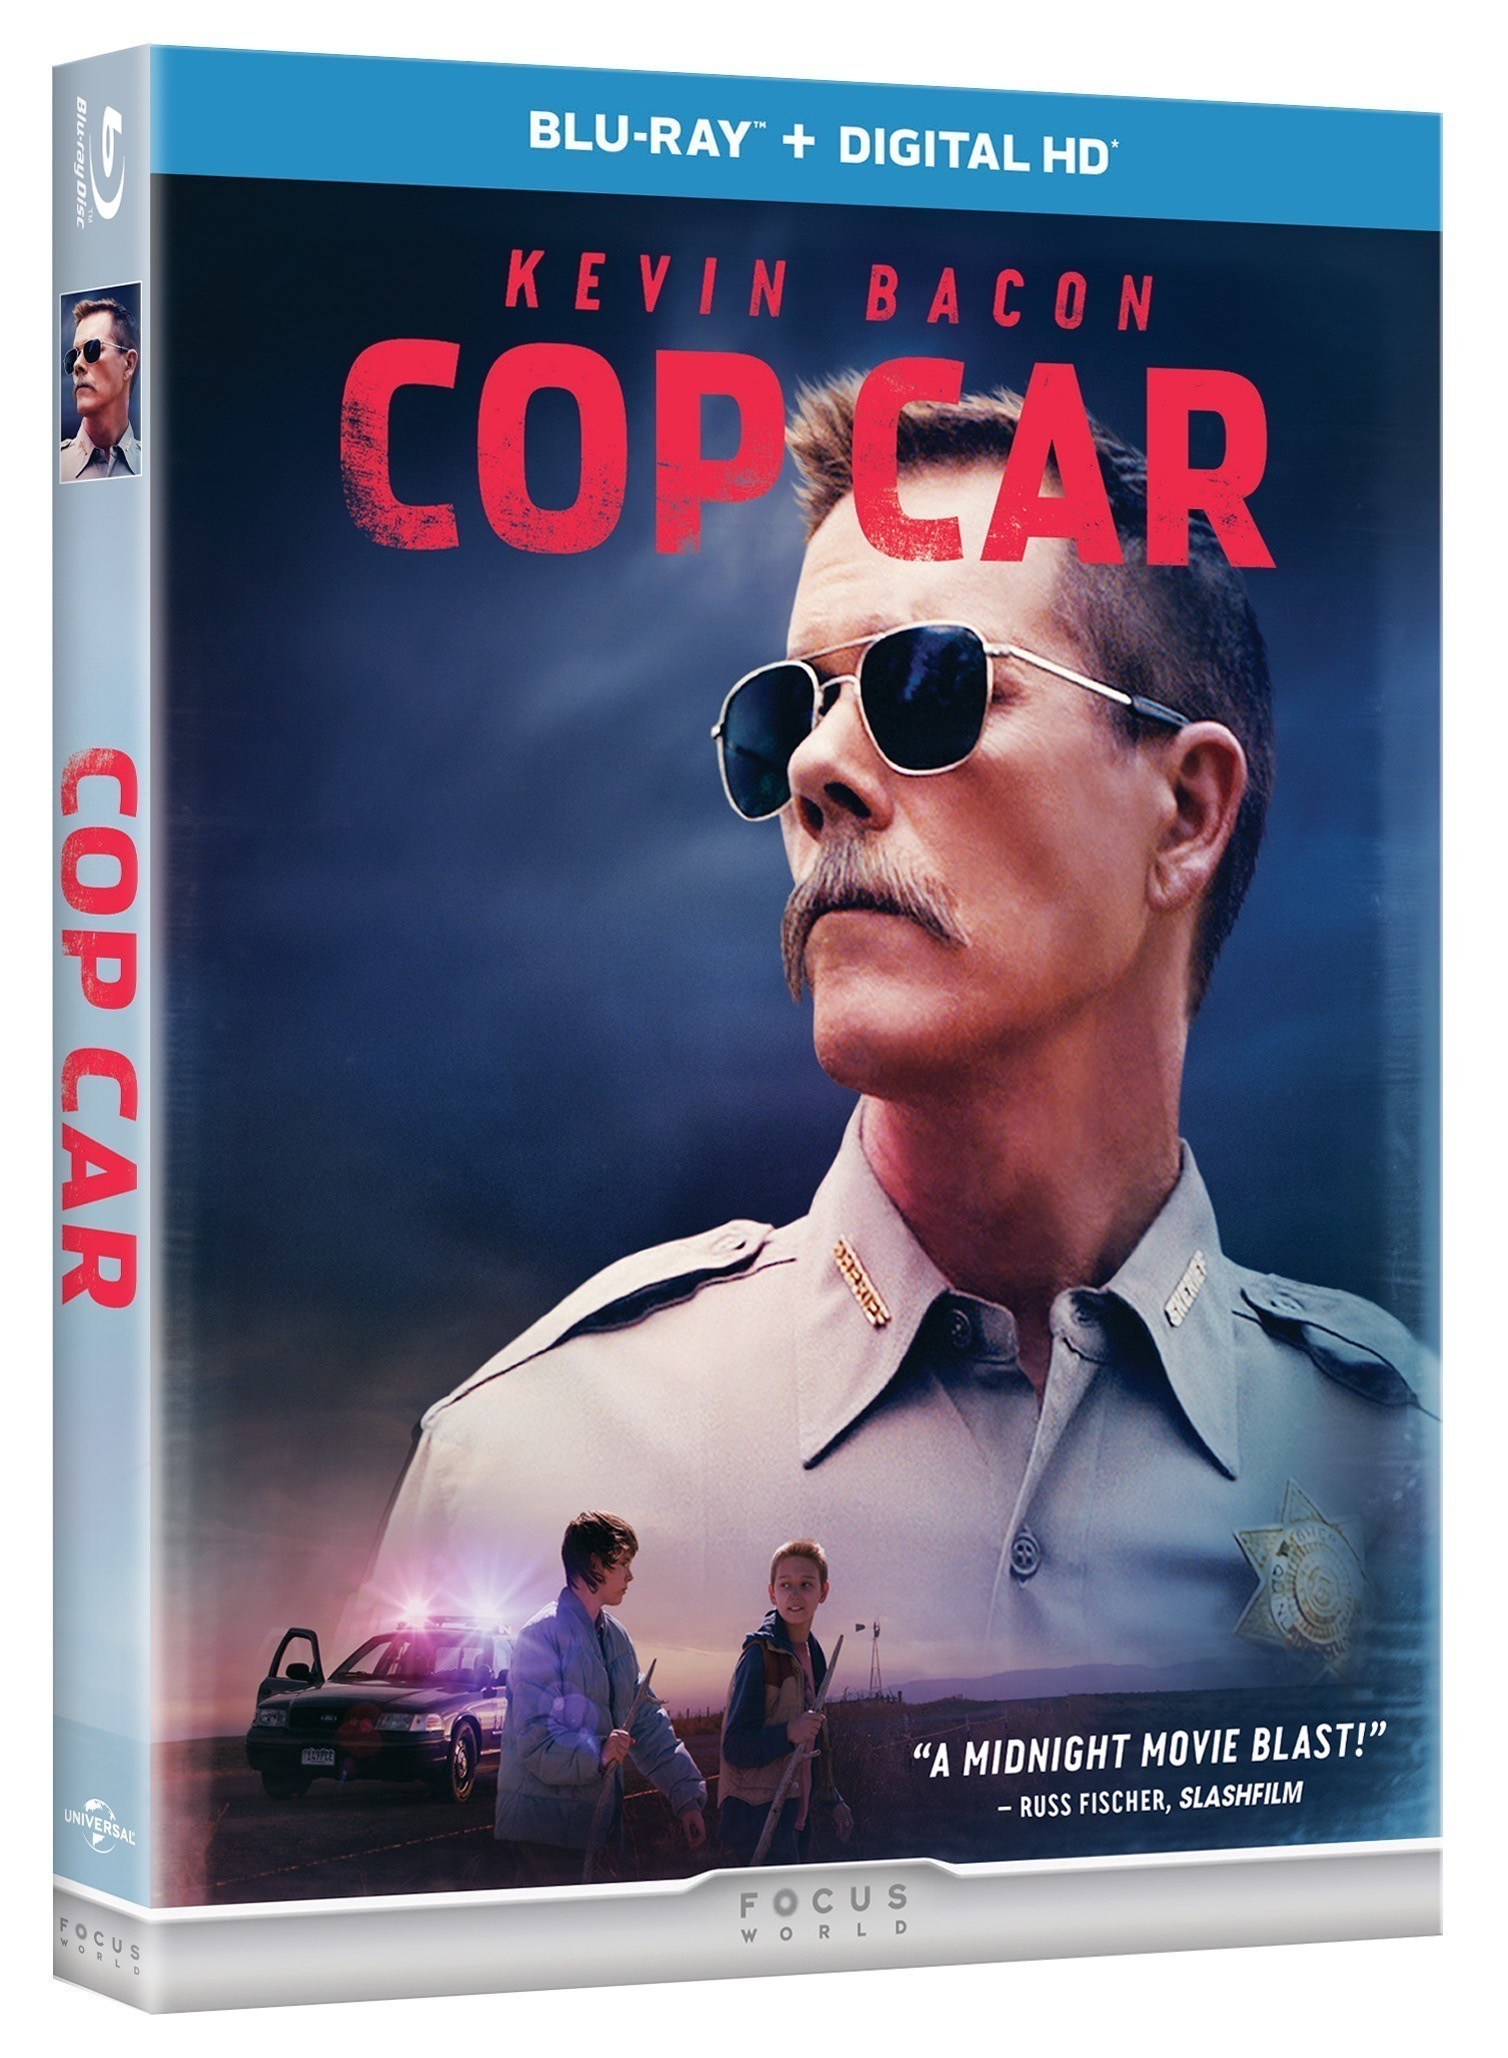 COP CAR, Starring Kevin Bacon, Comes to Digital HD, On-Demand & DVD Today